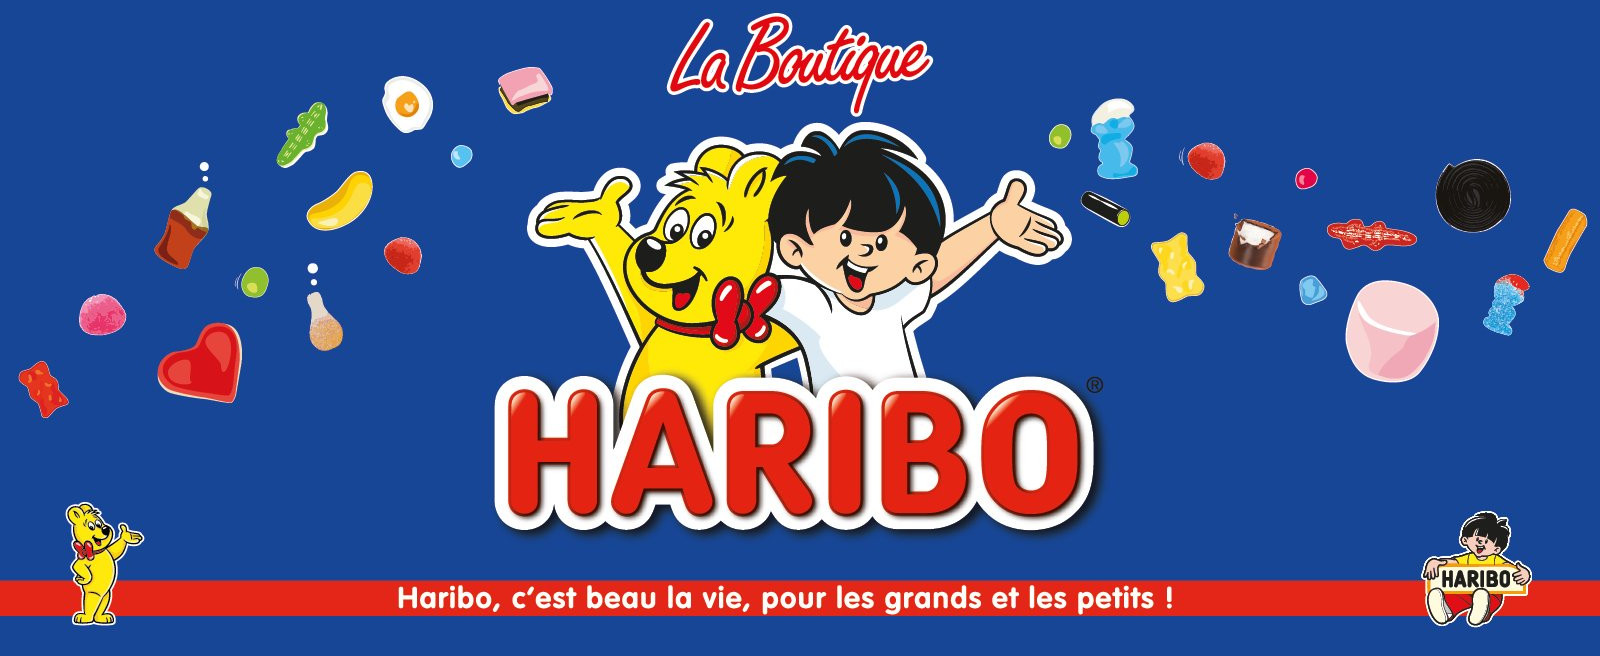 Boutique Haribo - Usines Center